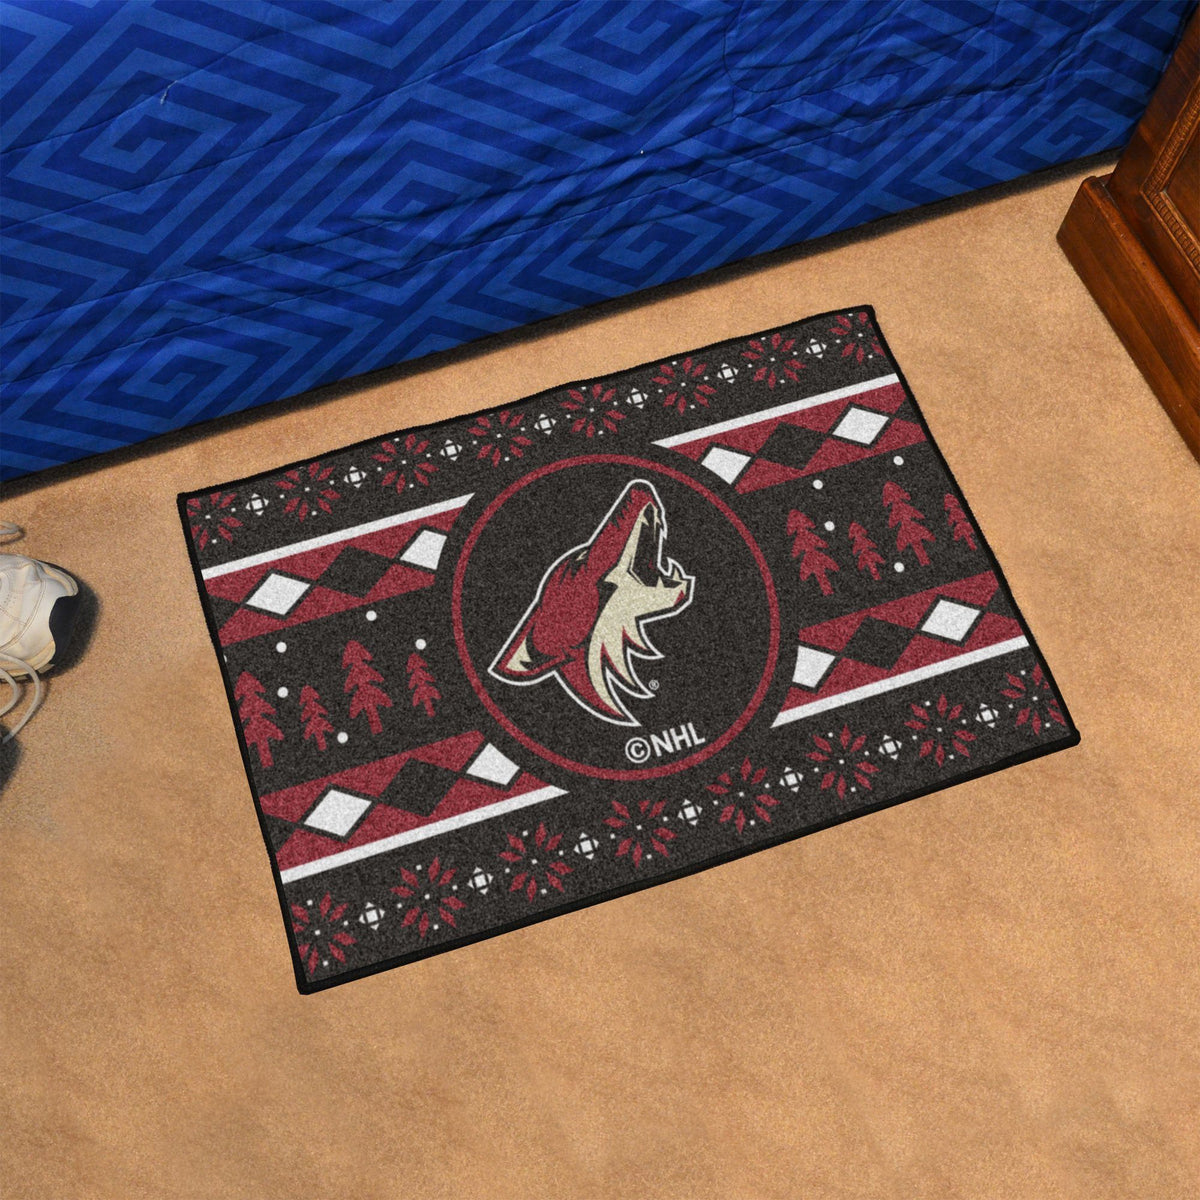 NHL - Holiday Sweater Starter Mat NHL Mats, Rectangular Mats, Holiday Sweater Starter Mat, NHL, Home Fan Mats Arizona Coyotes